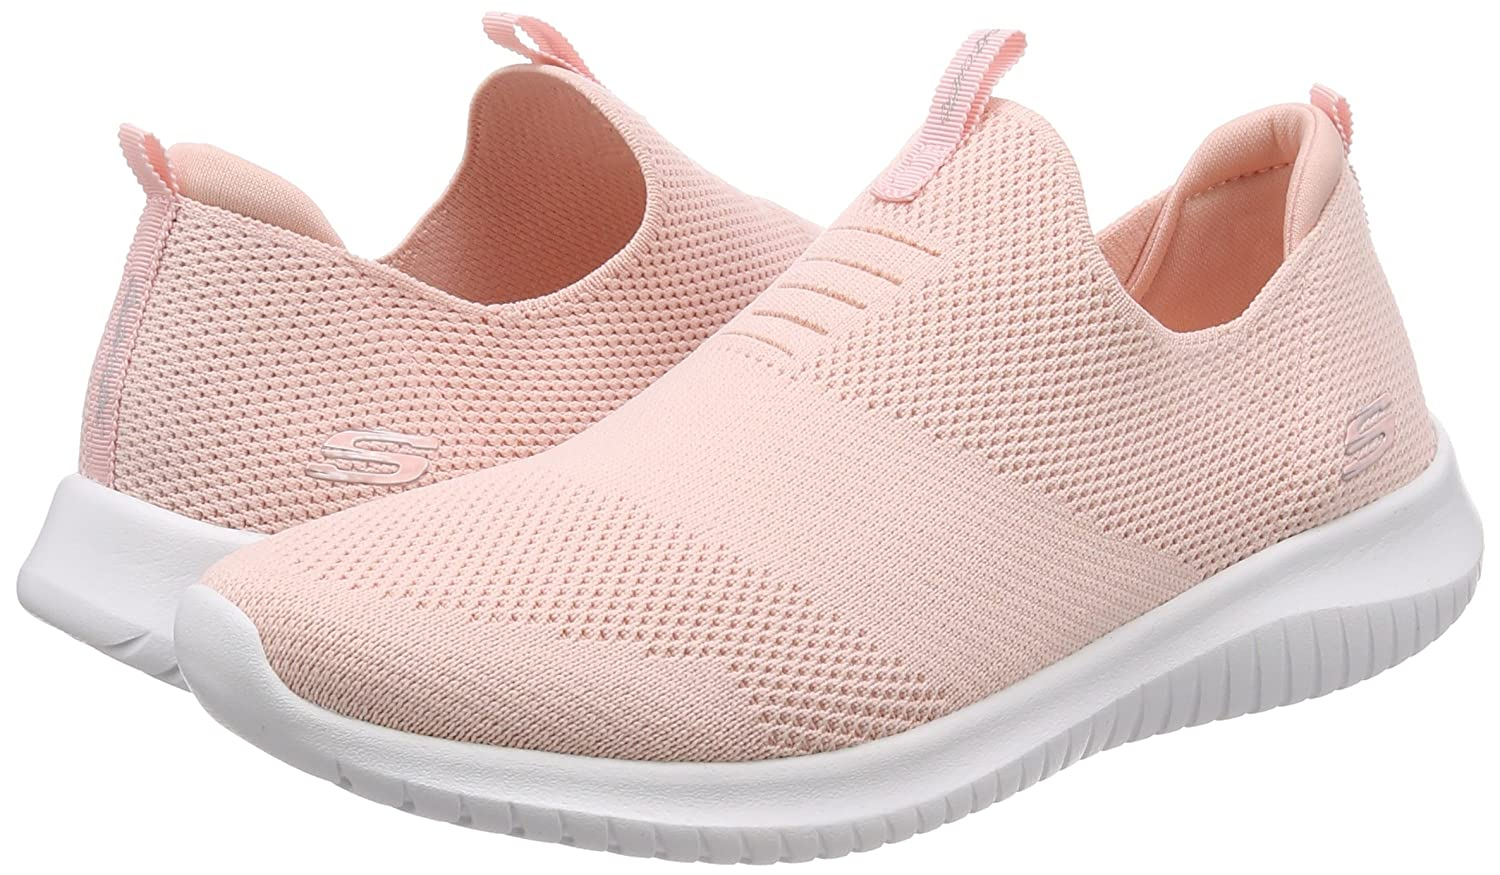 Skechers Damen 12837 12837 12837 Slip On Turnschuhe ddc14d